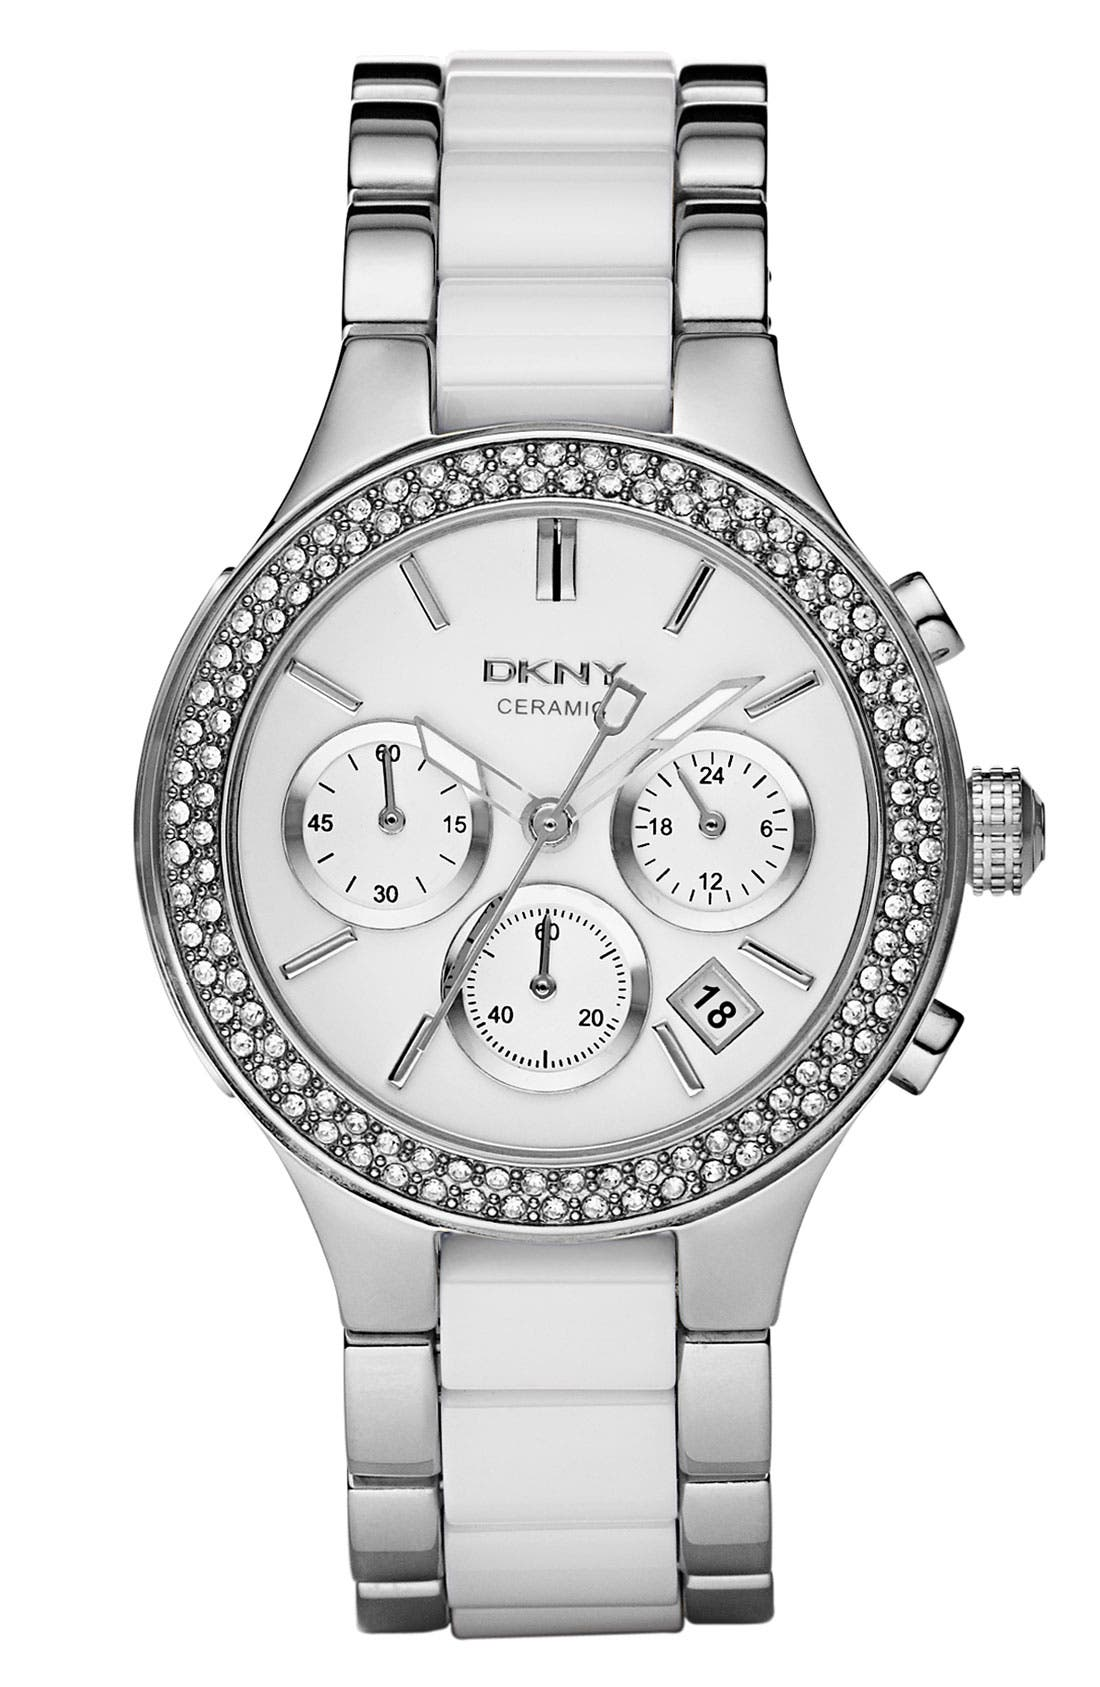 Alternate Image 1 Selected - DKNY 'Chambers' Ceramic & Stainless Steel Crystal Bezel Watch, 38mm